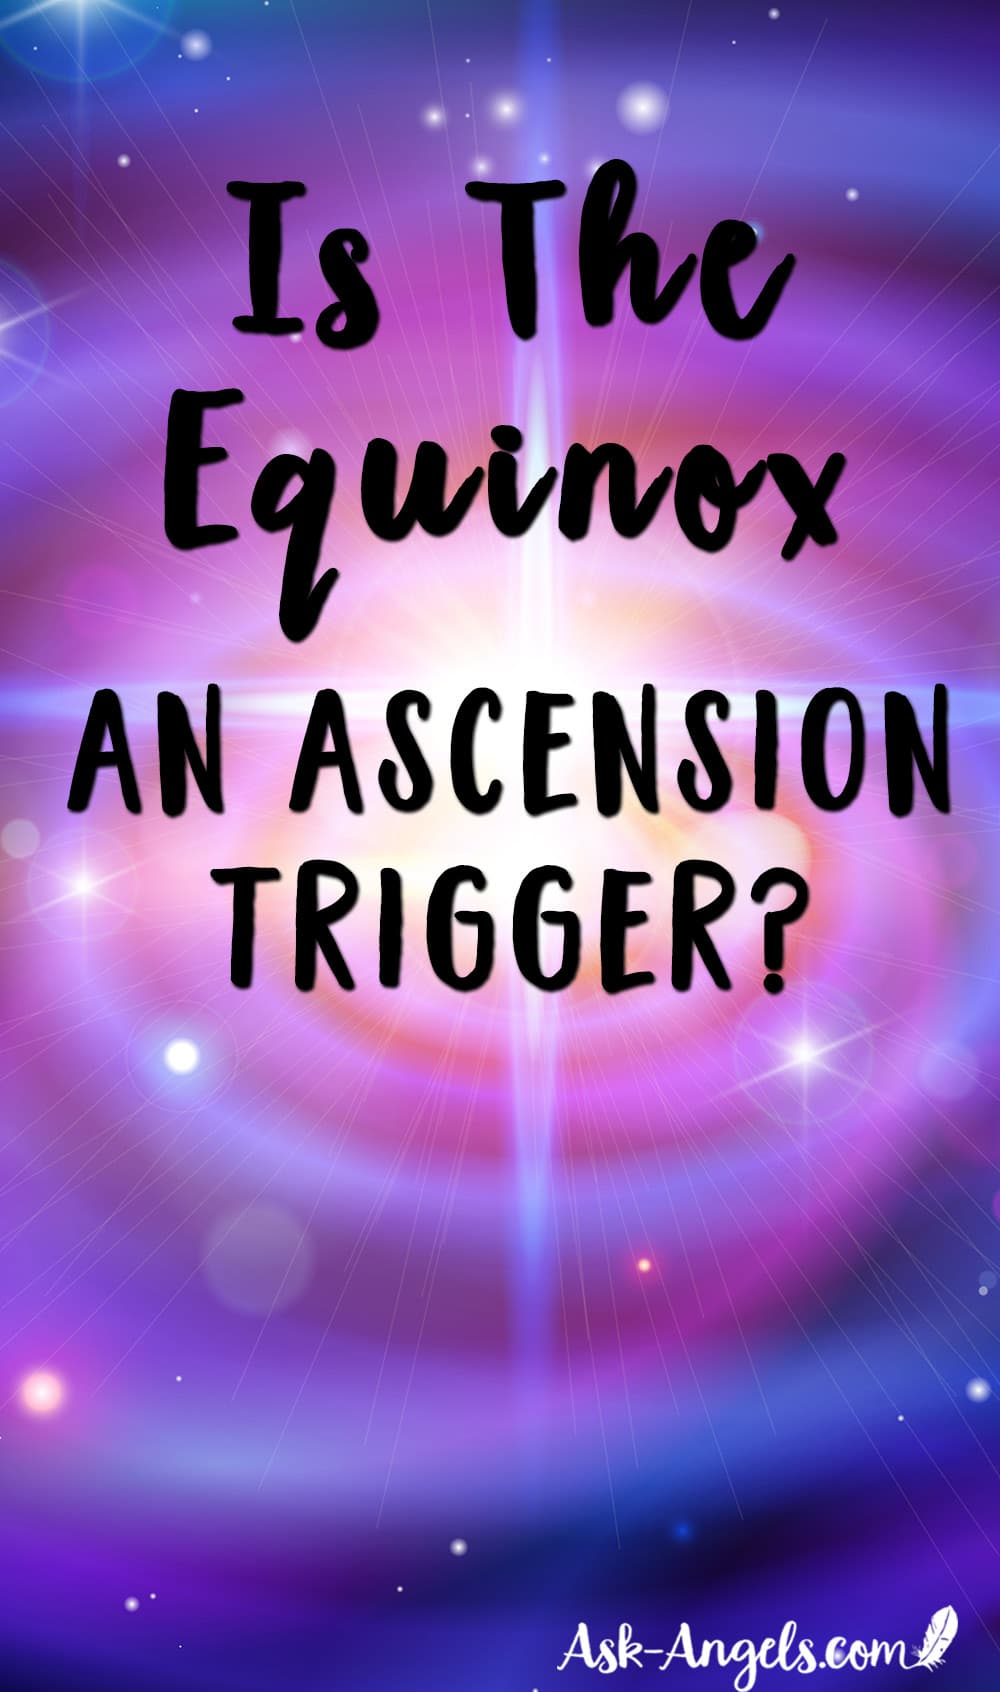 Equinox spiritual meaning ask angels equinox and an ascension trigger malvernweather